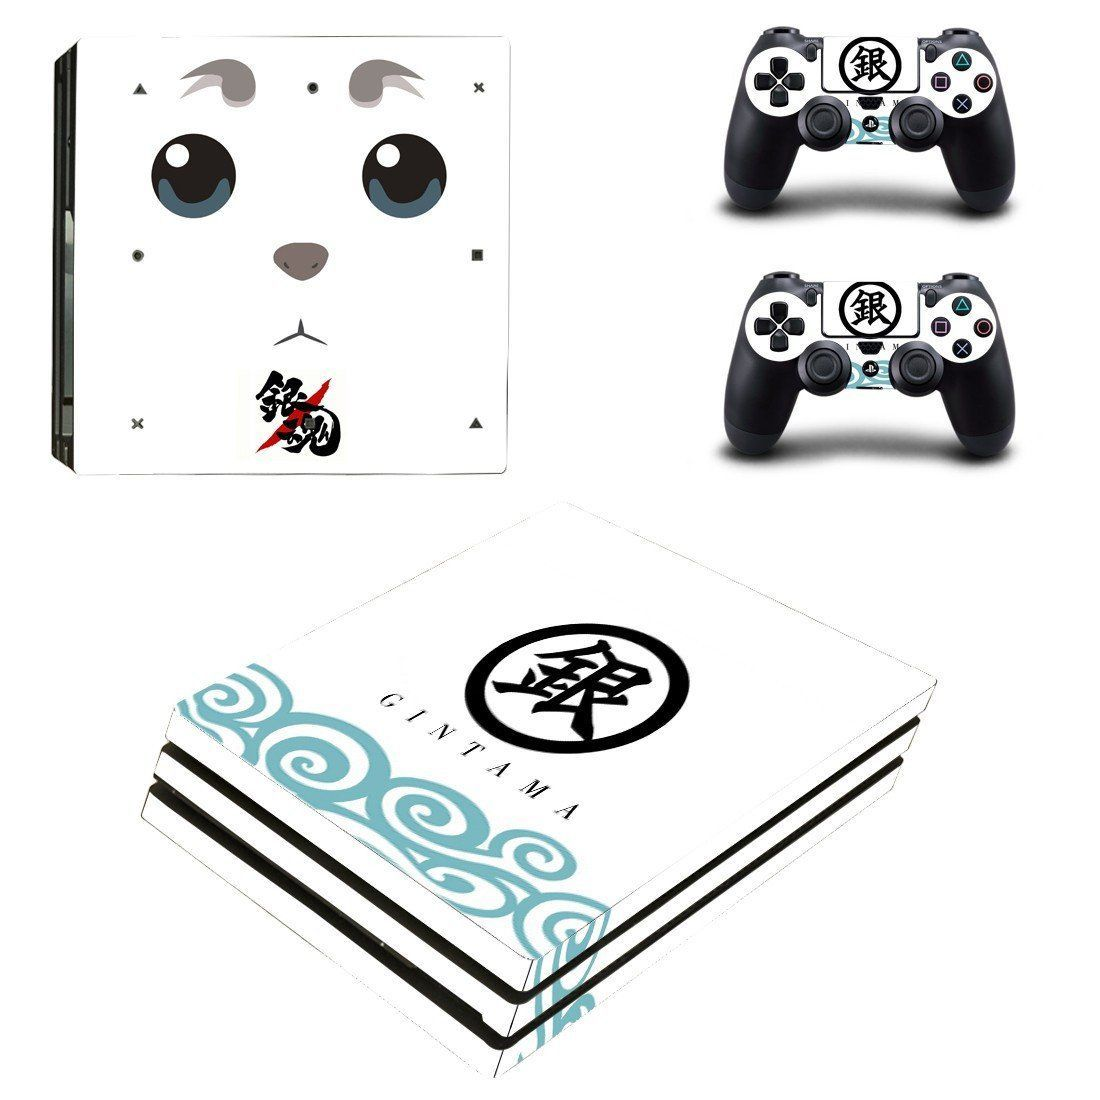 Gintama Ps4 pro edition skin decal for console and controllers